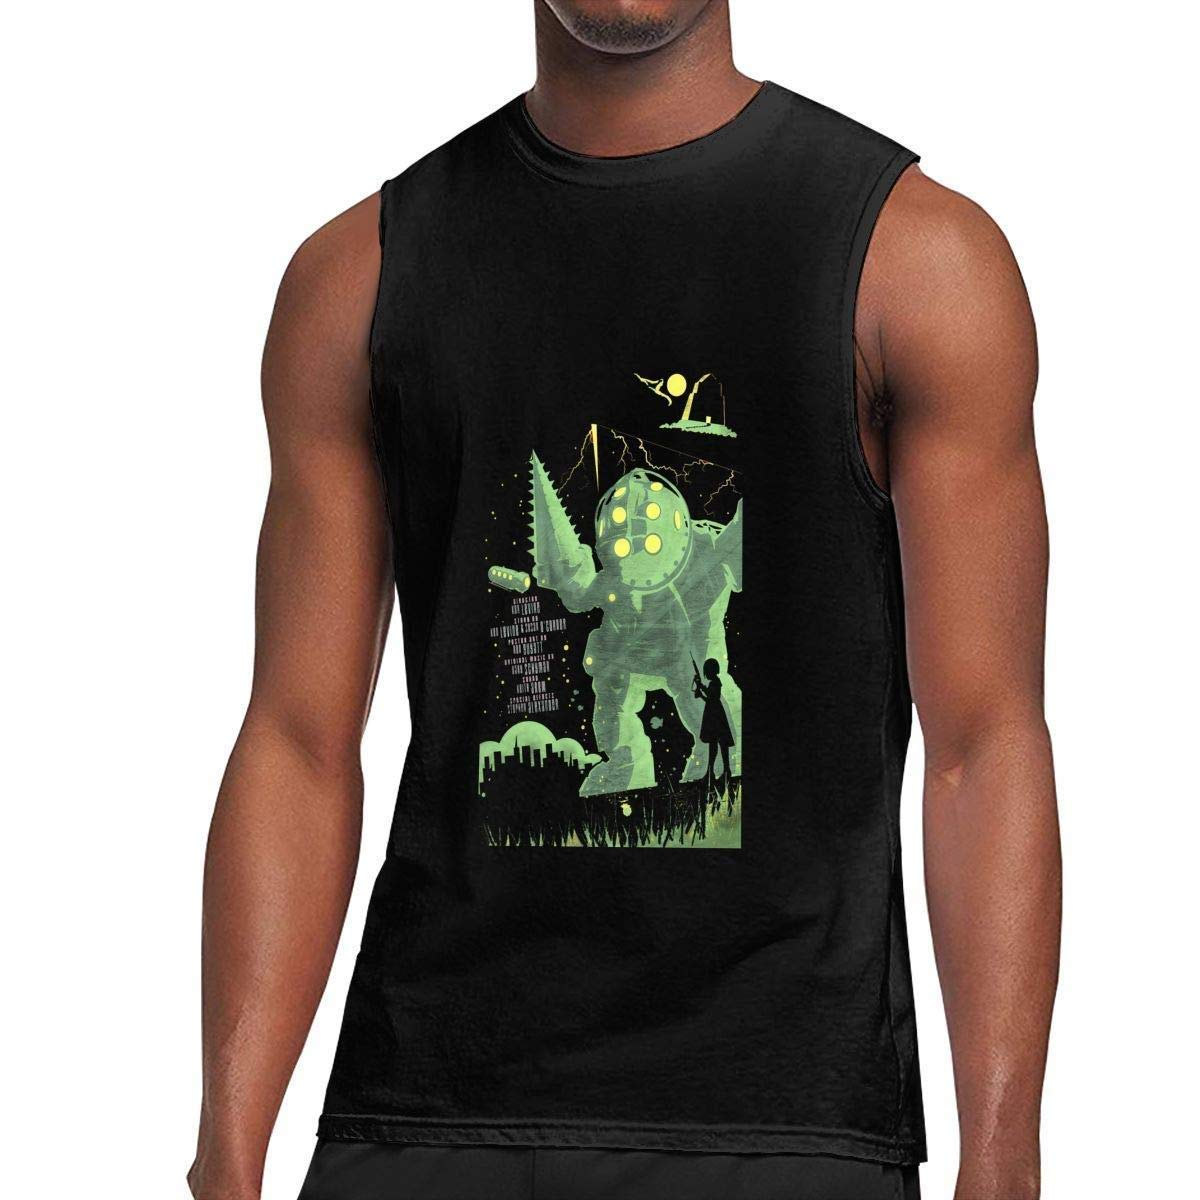 Zpanter S Sleeveless T Shirts Bioshock Workout Tank Tops Gym Bodybuilding Tshirts Black